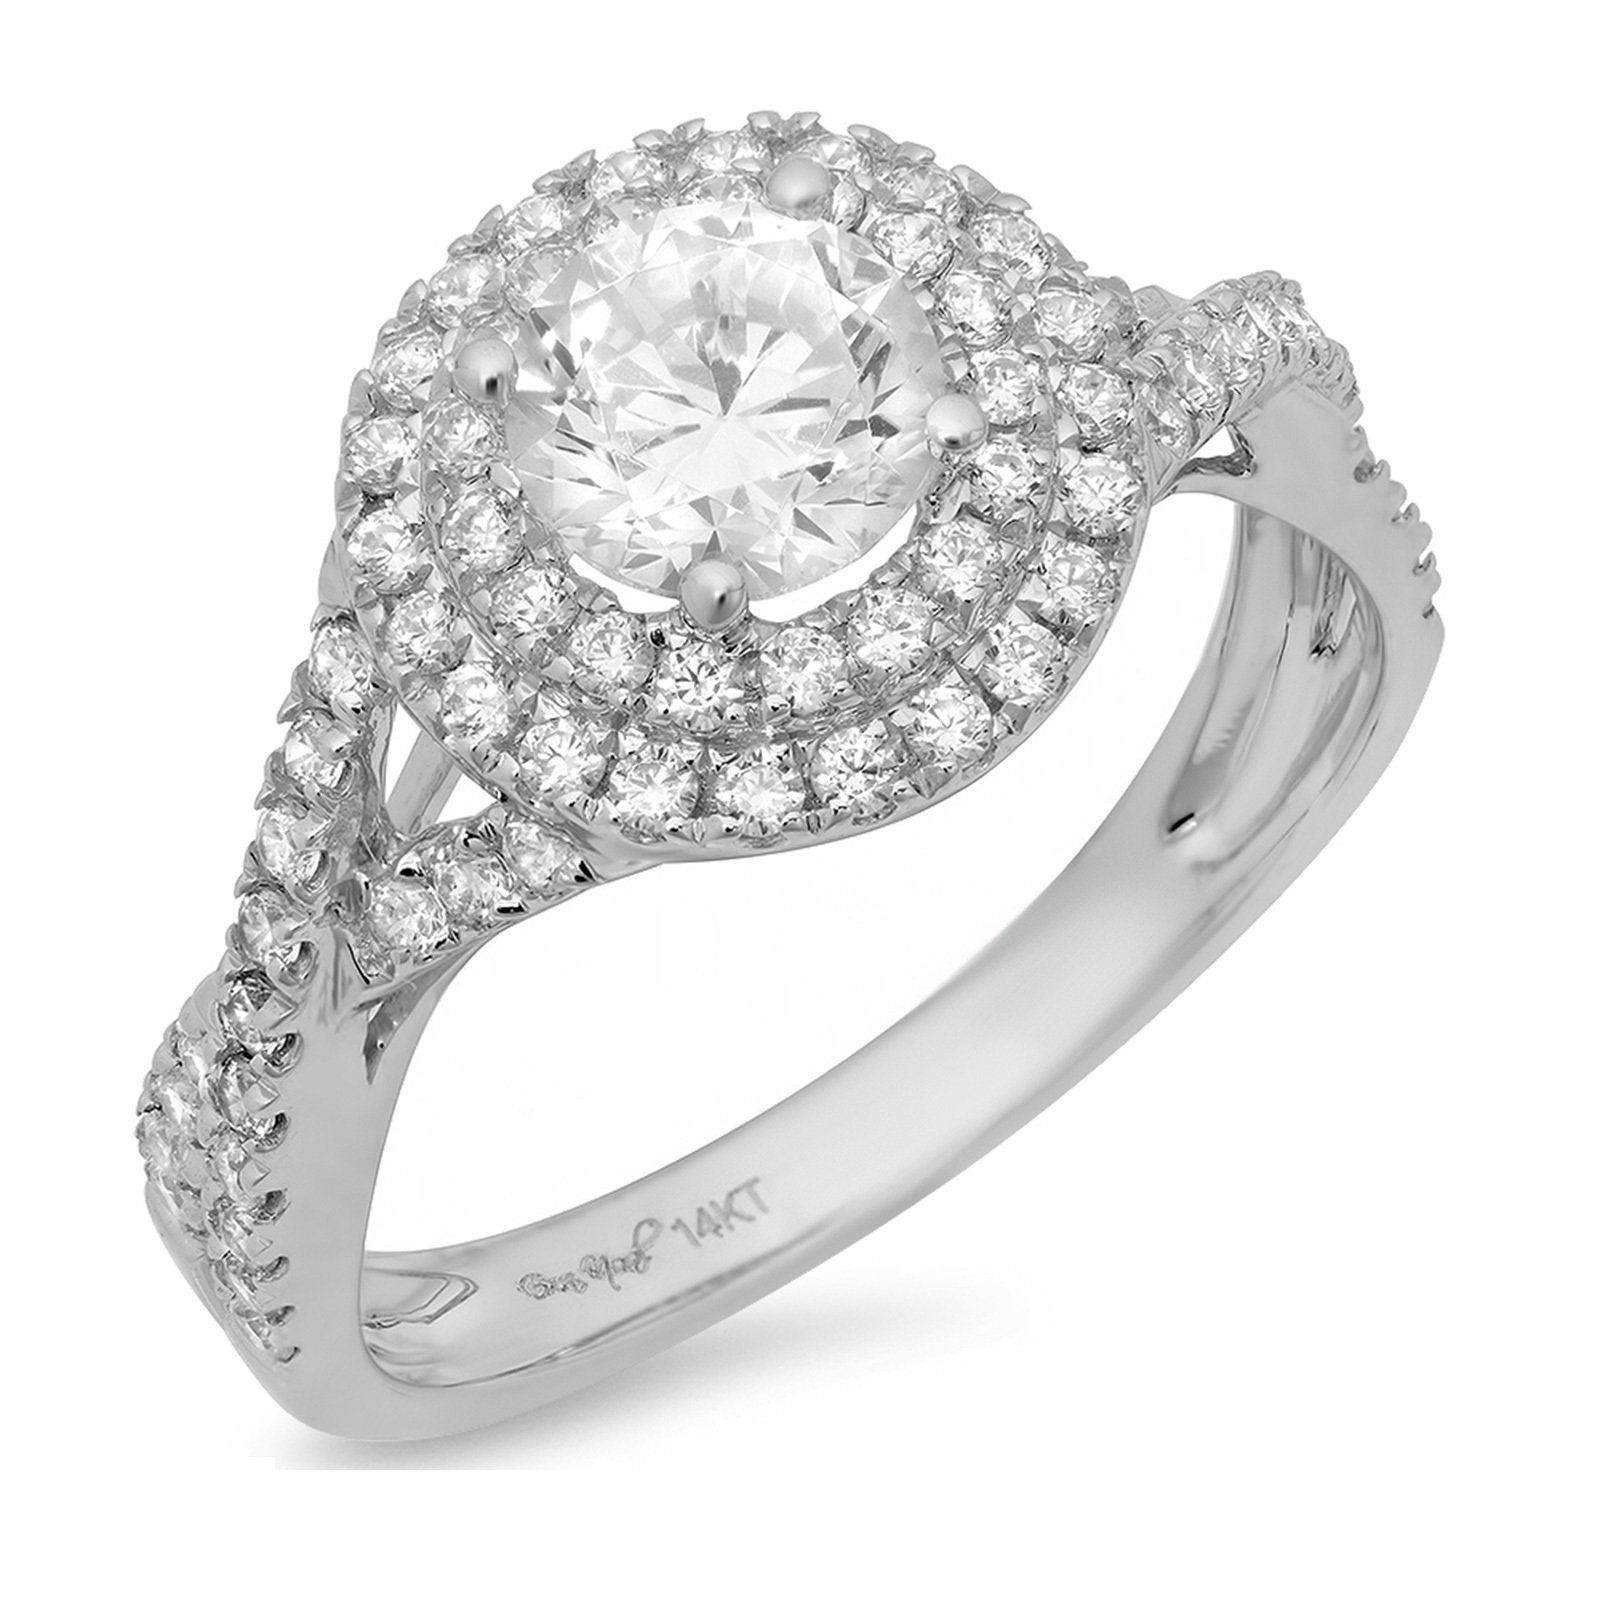 1.6 Ct Round Cut Pave Halo Promise Engagement Bridal Anniversary Ring Band 14K White Gold, Size 7, Clara Pucci